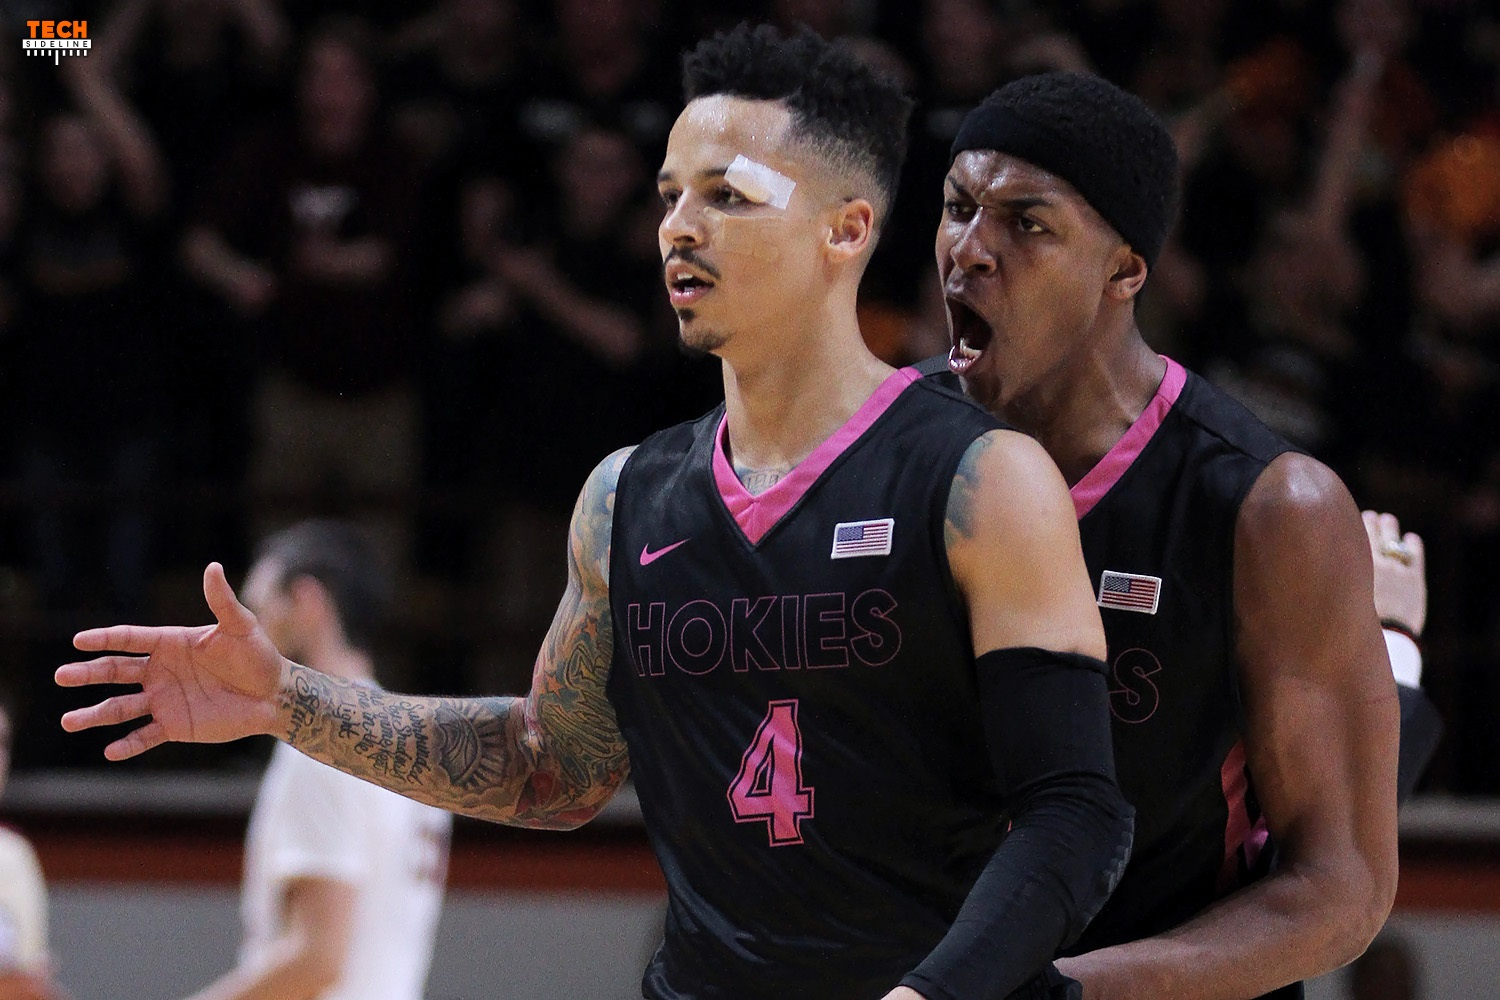 Seth Allen, despite a bloodied face, helped Tech beat Florida State.